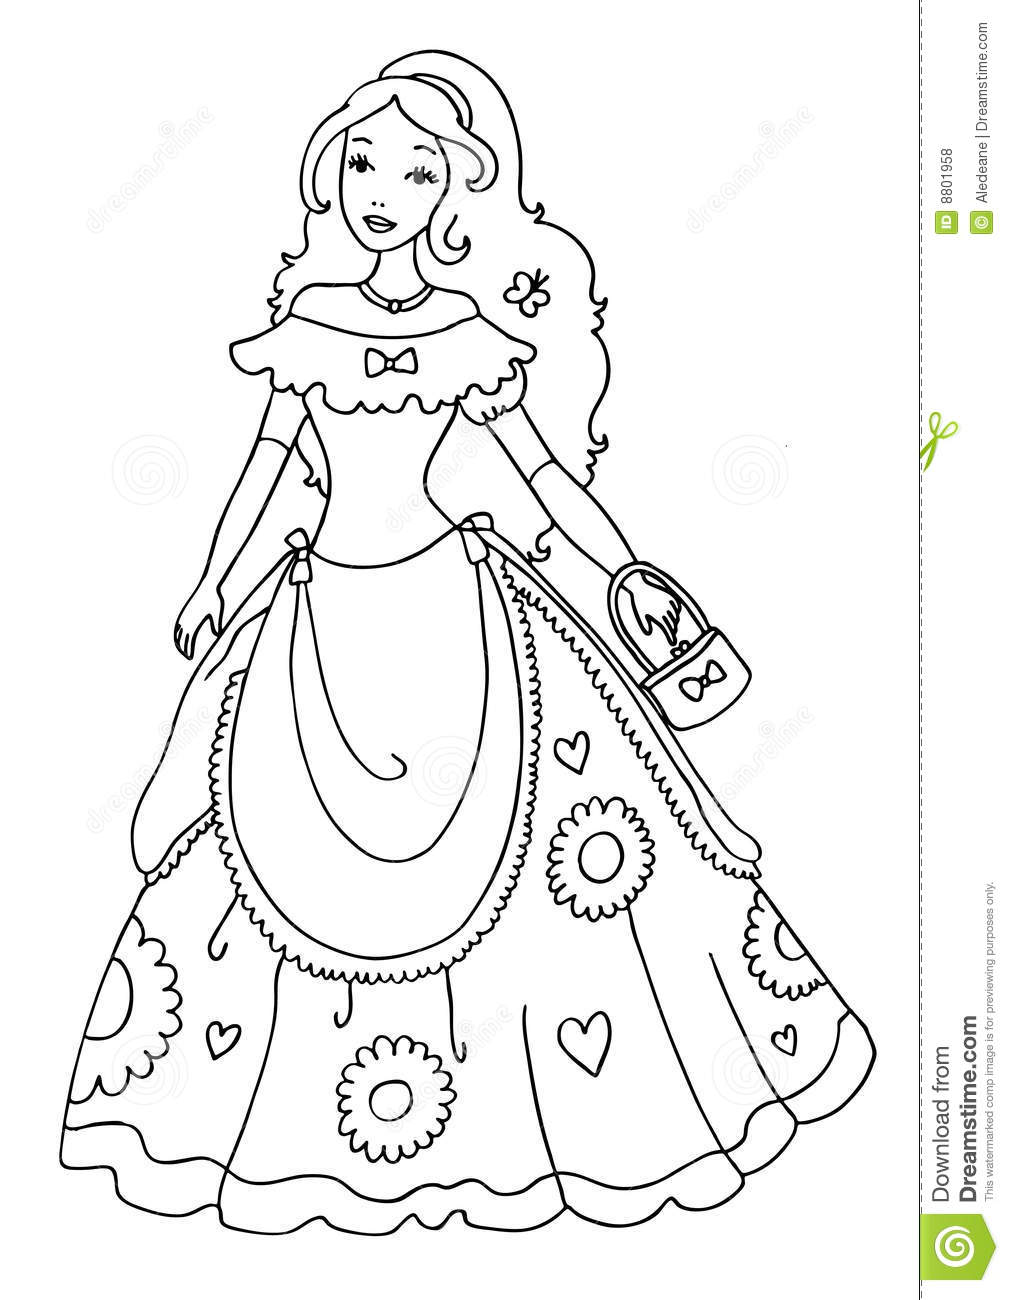 Coloring Pages Of Mermaids That Are Fancy For Girls